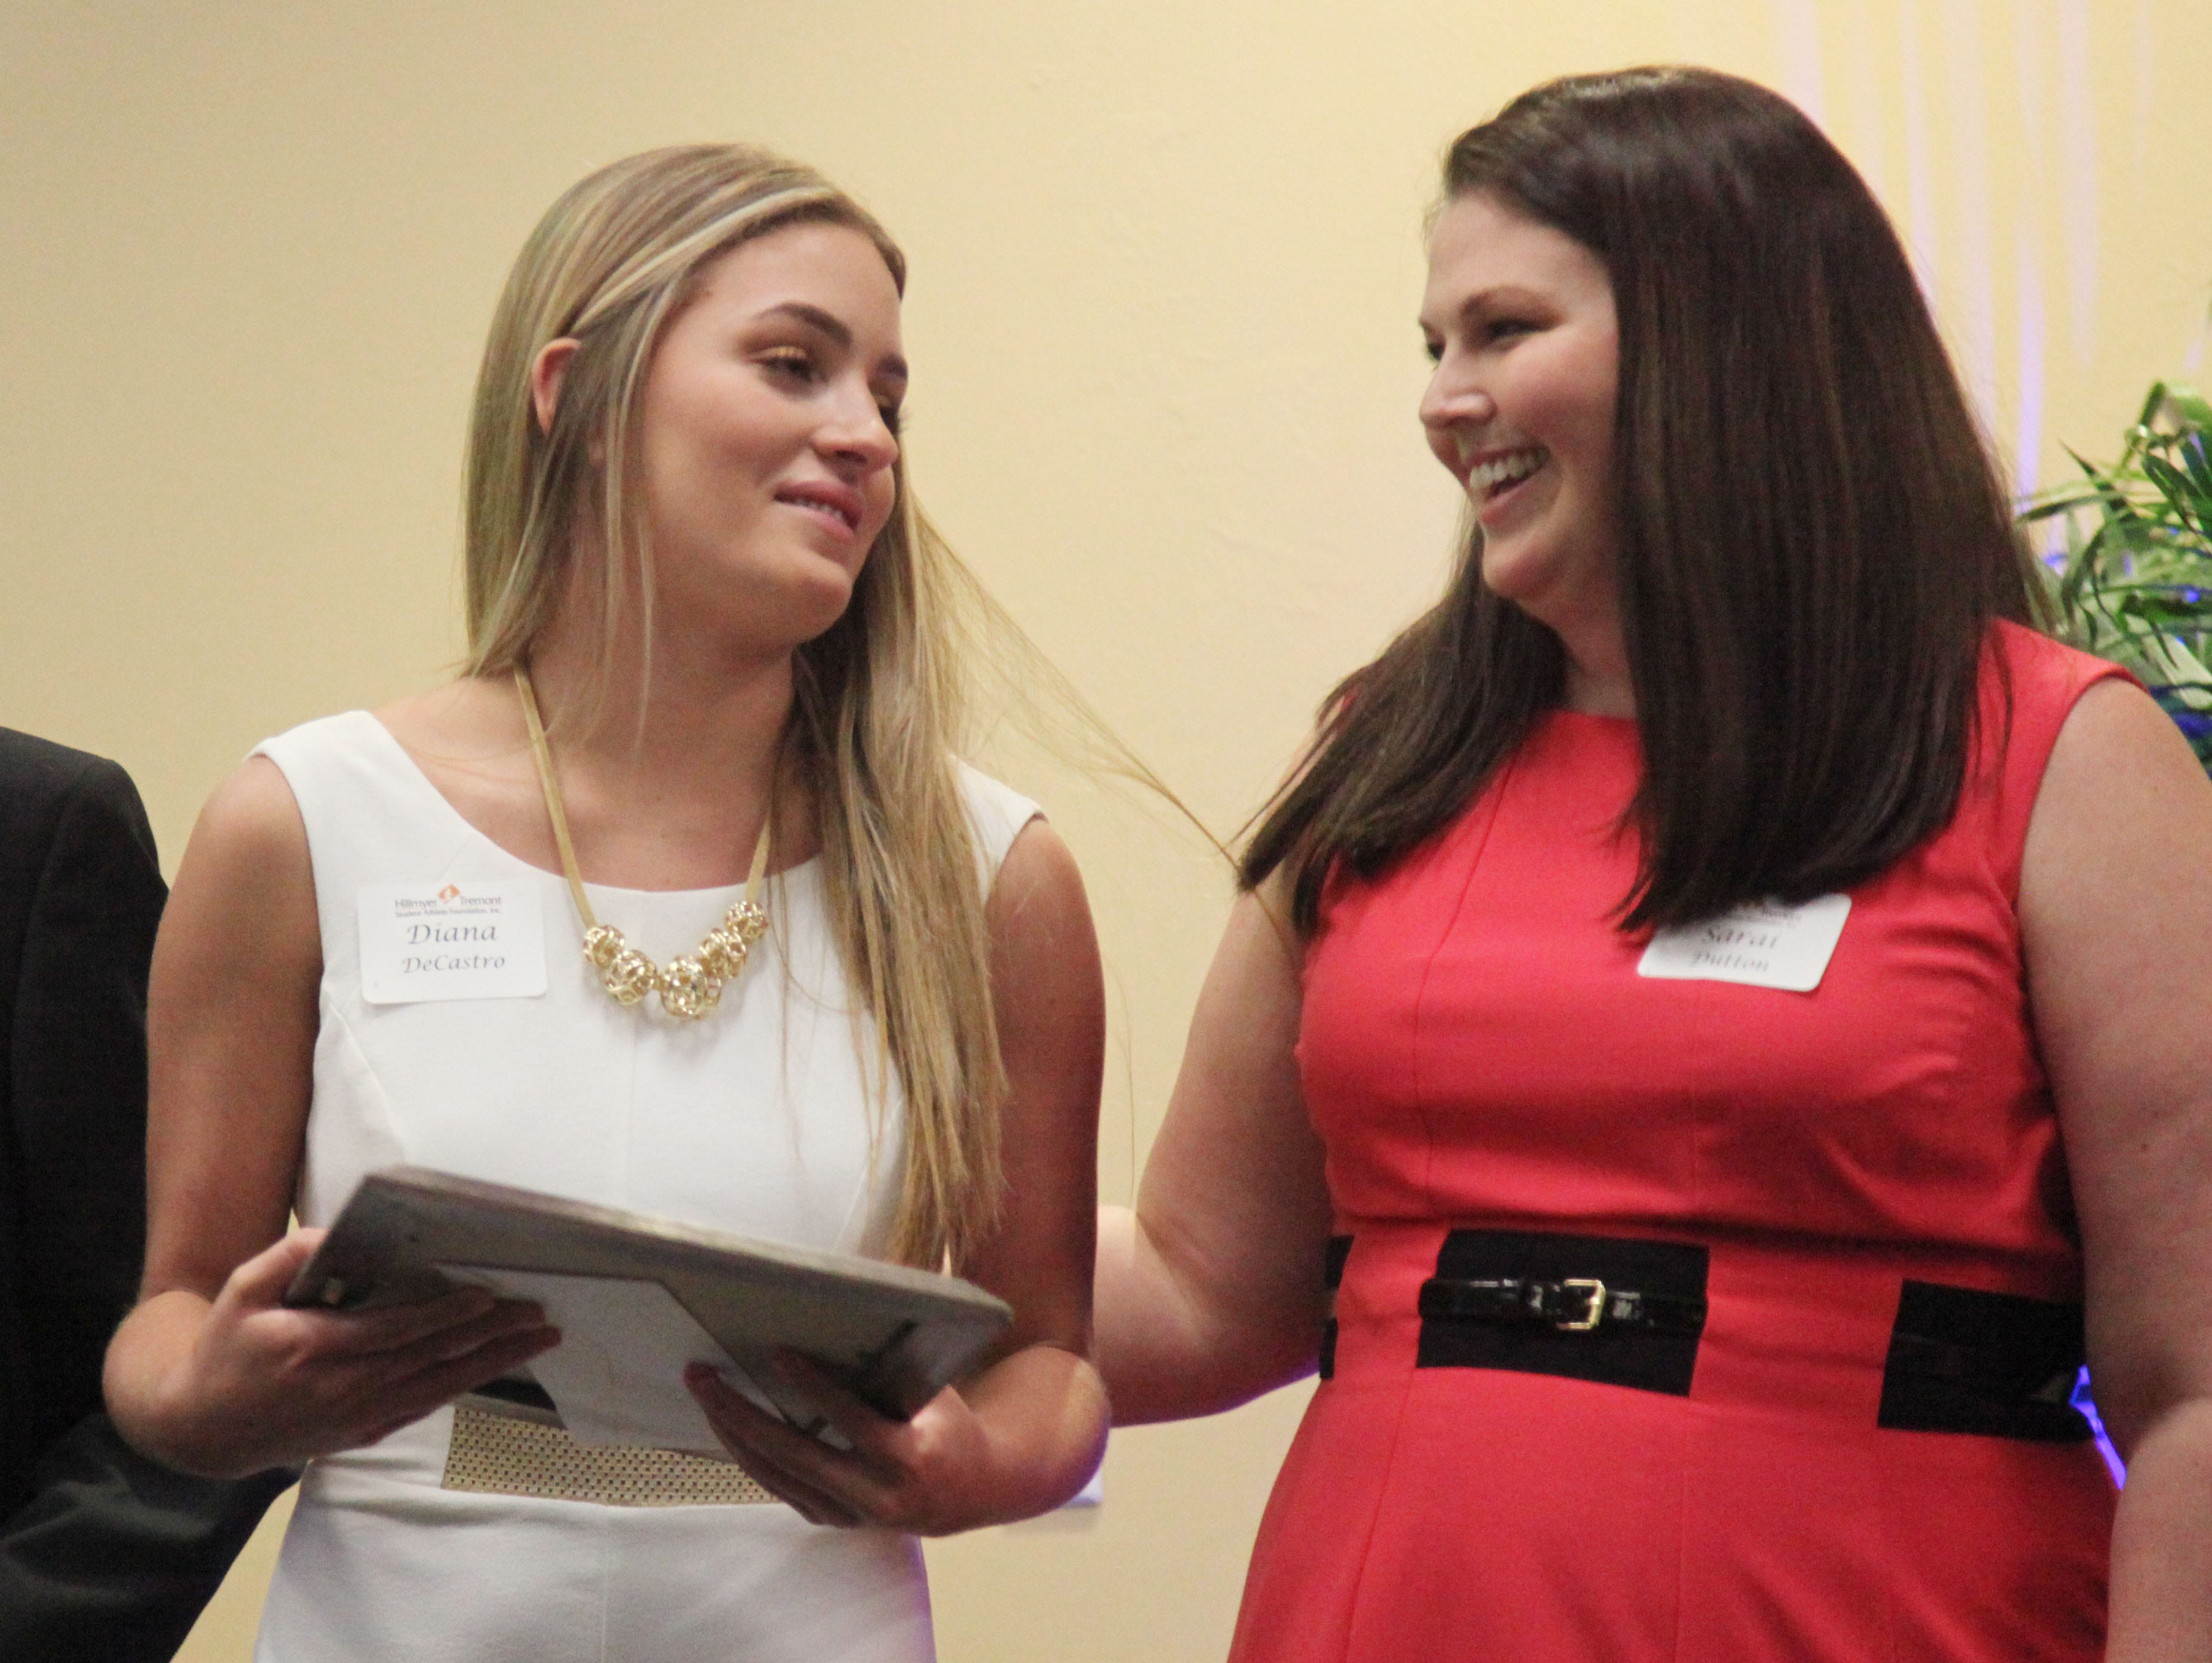 Diana DeCastro, of South Fort Myers High School is congratulated by coach Sarai Dutton during the Hillmyer-Tremont scholarship banquet at FGCU's Cohen Center on Monday.